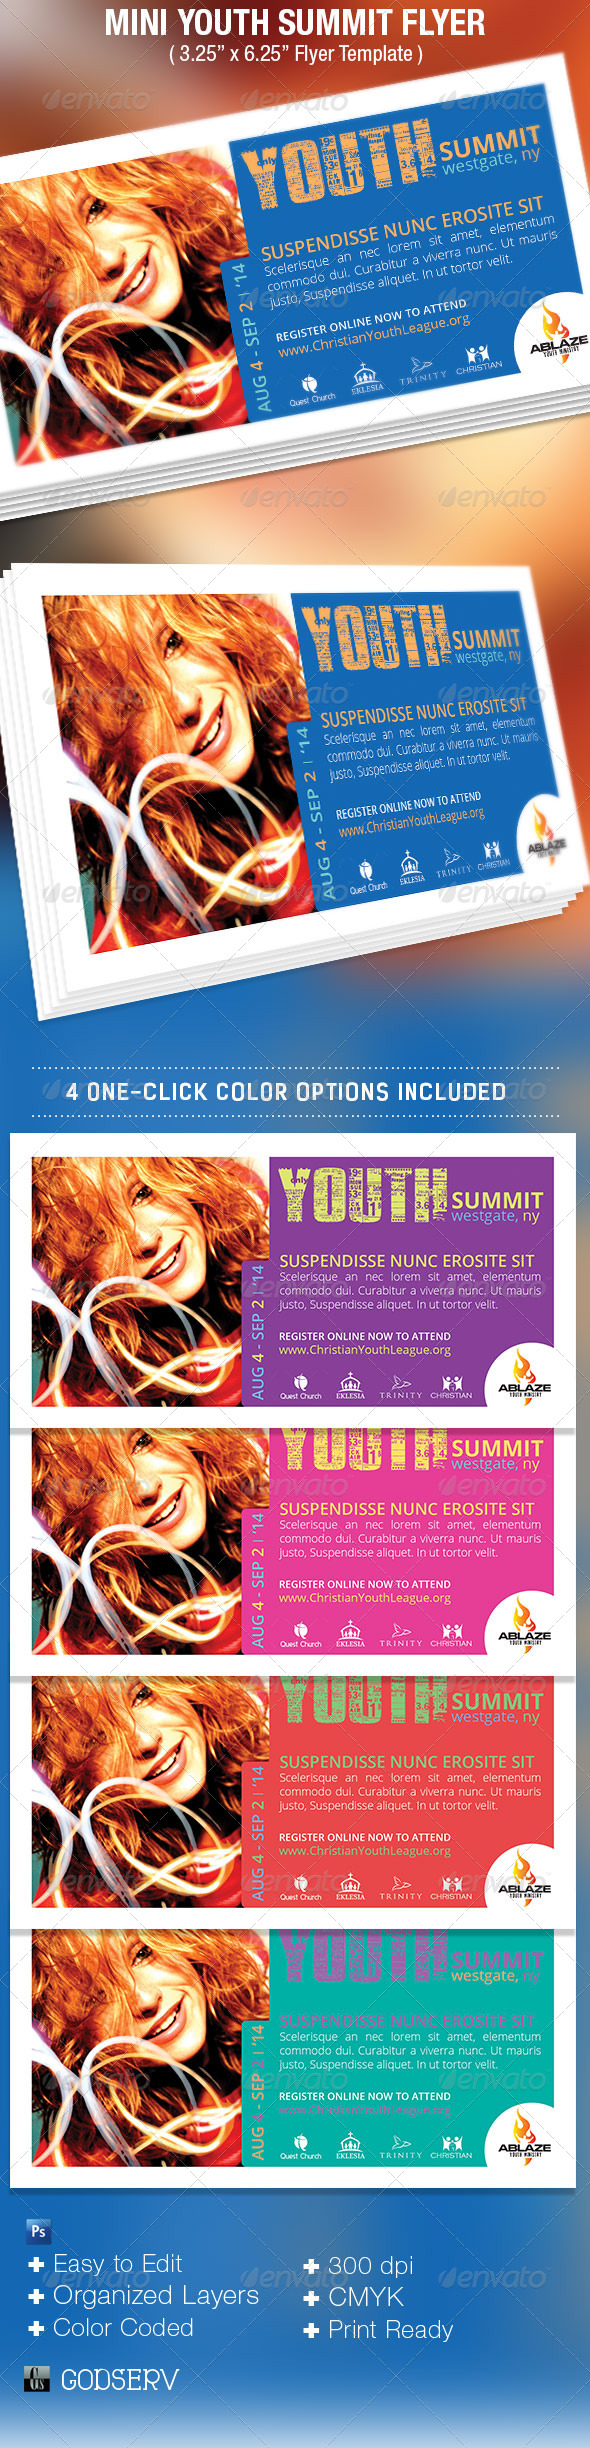 mini youth summit flyer template by godserv graphicriver